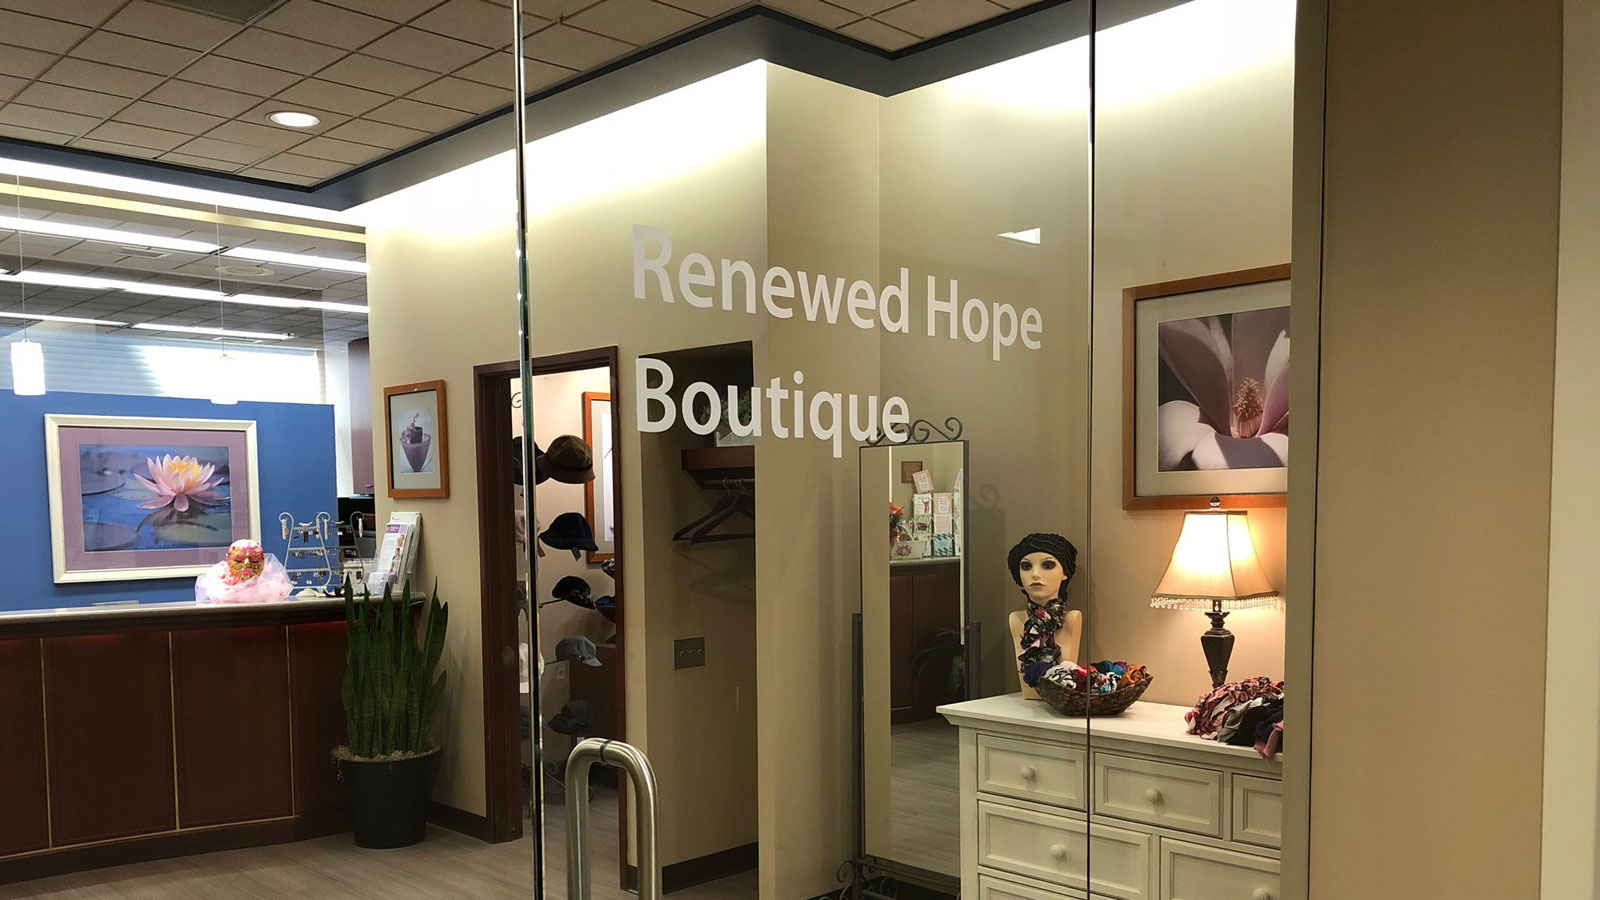 Renewed Hope Boutique